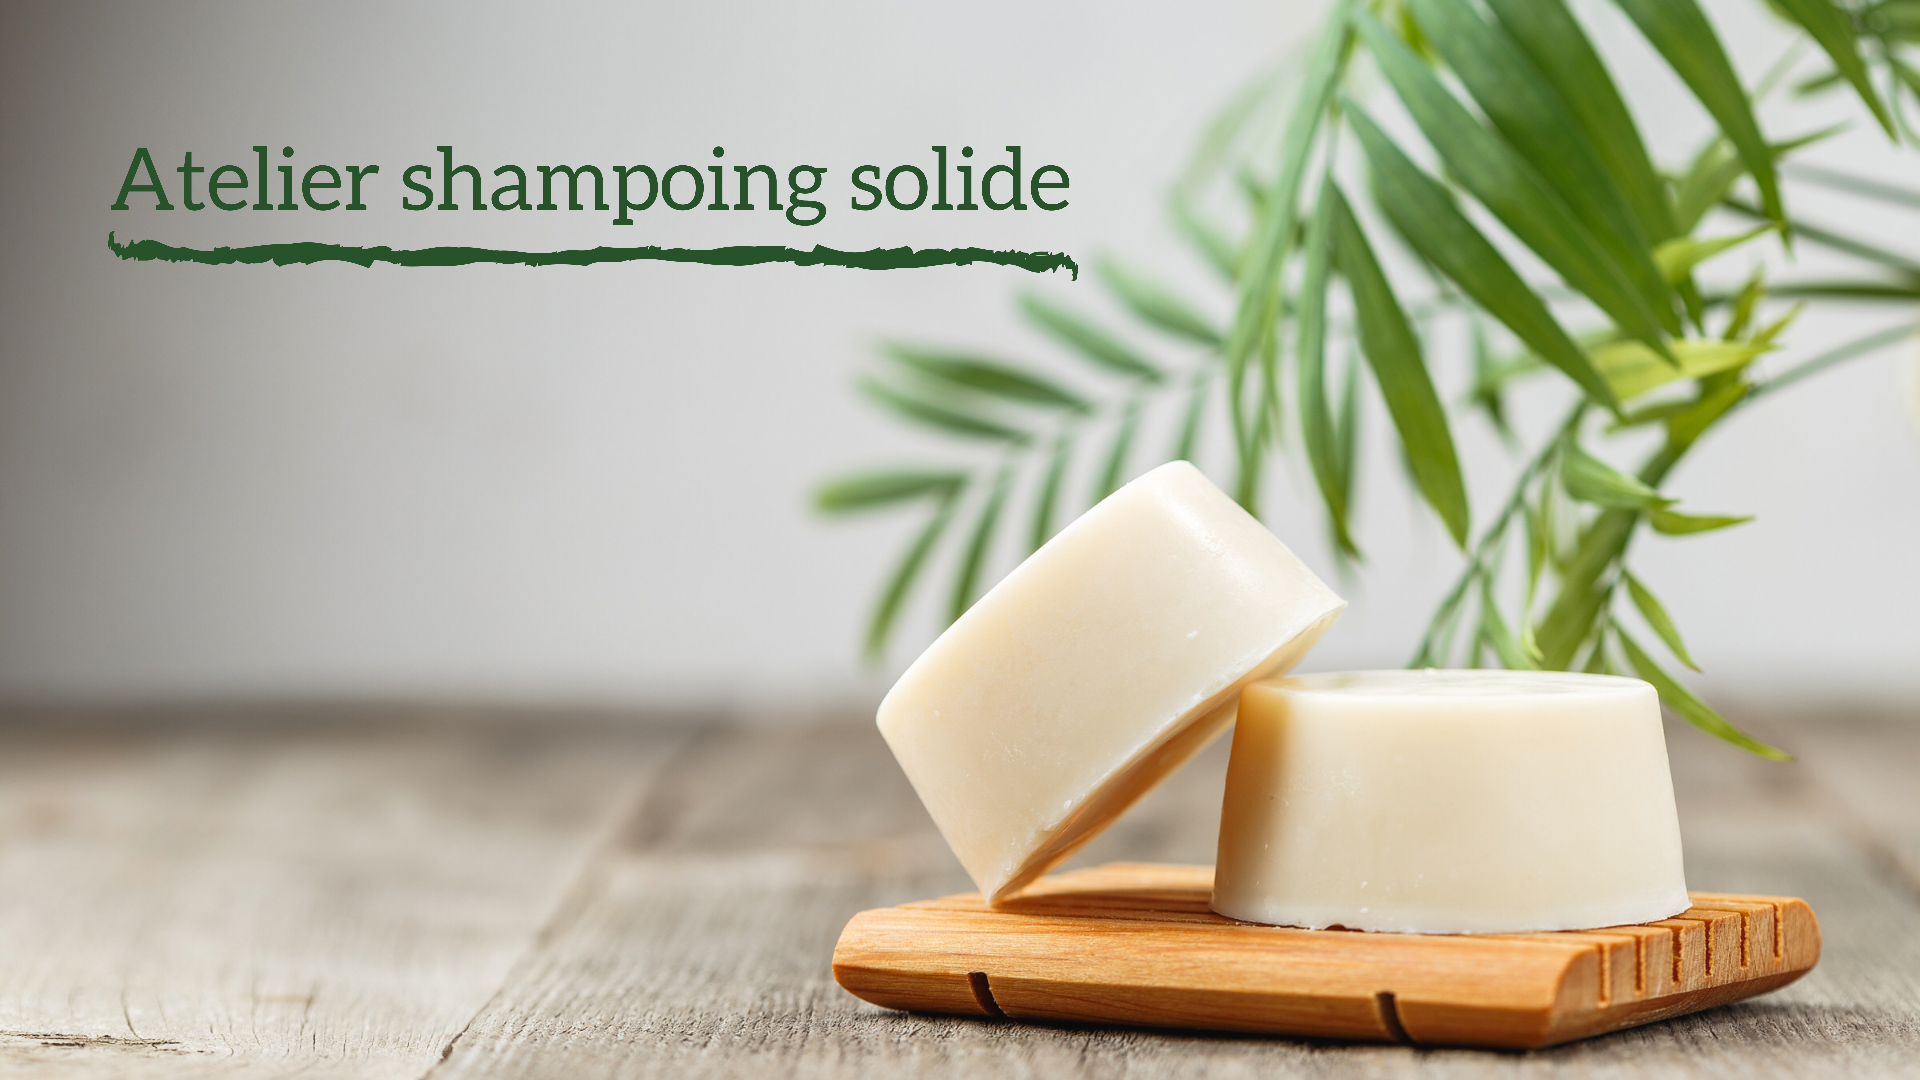 Atelier shampoing solide